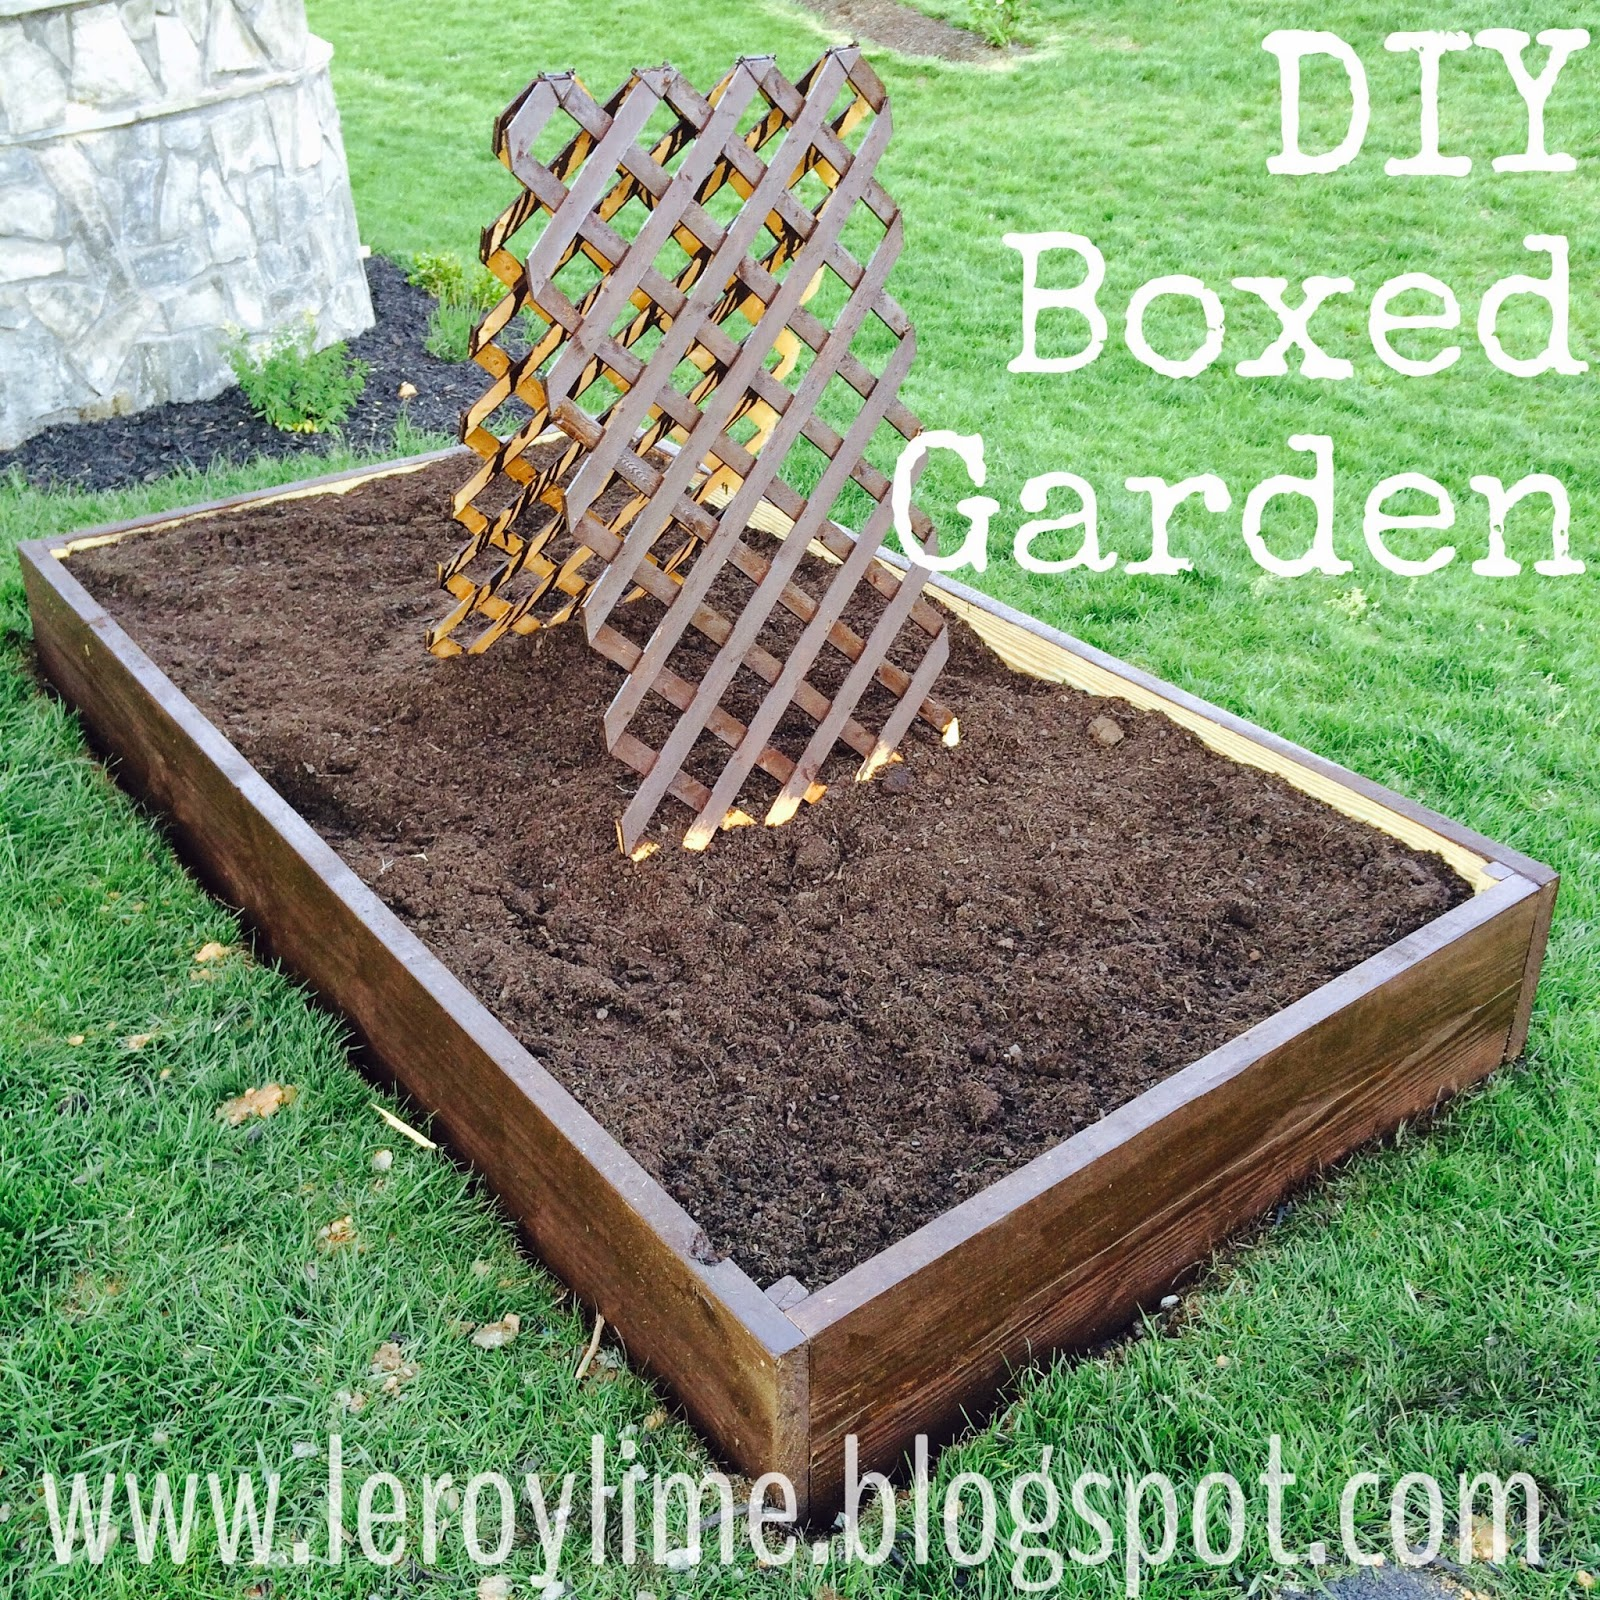 DIY Raised Garden Box